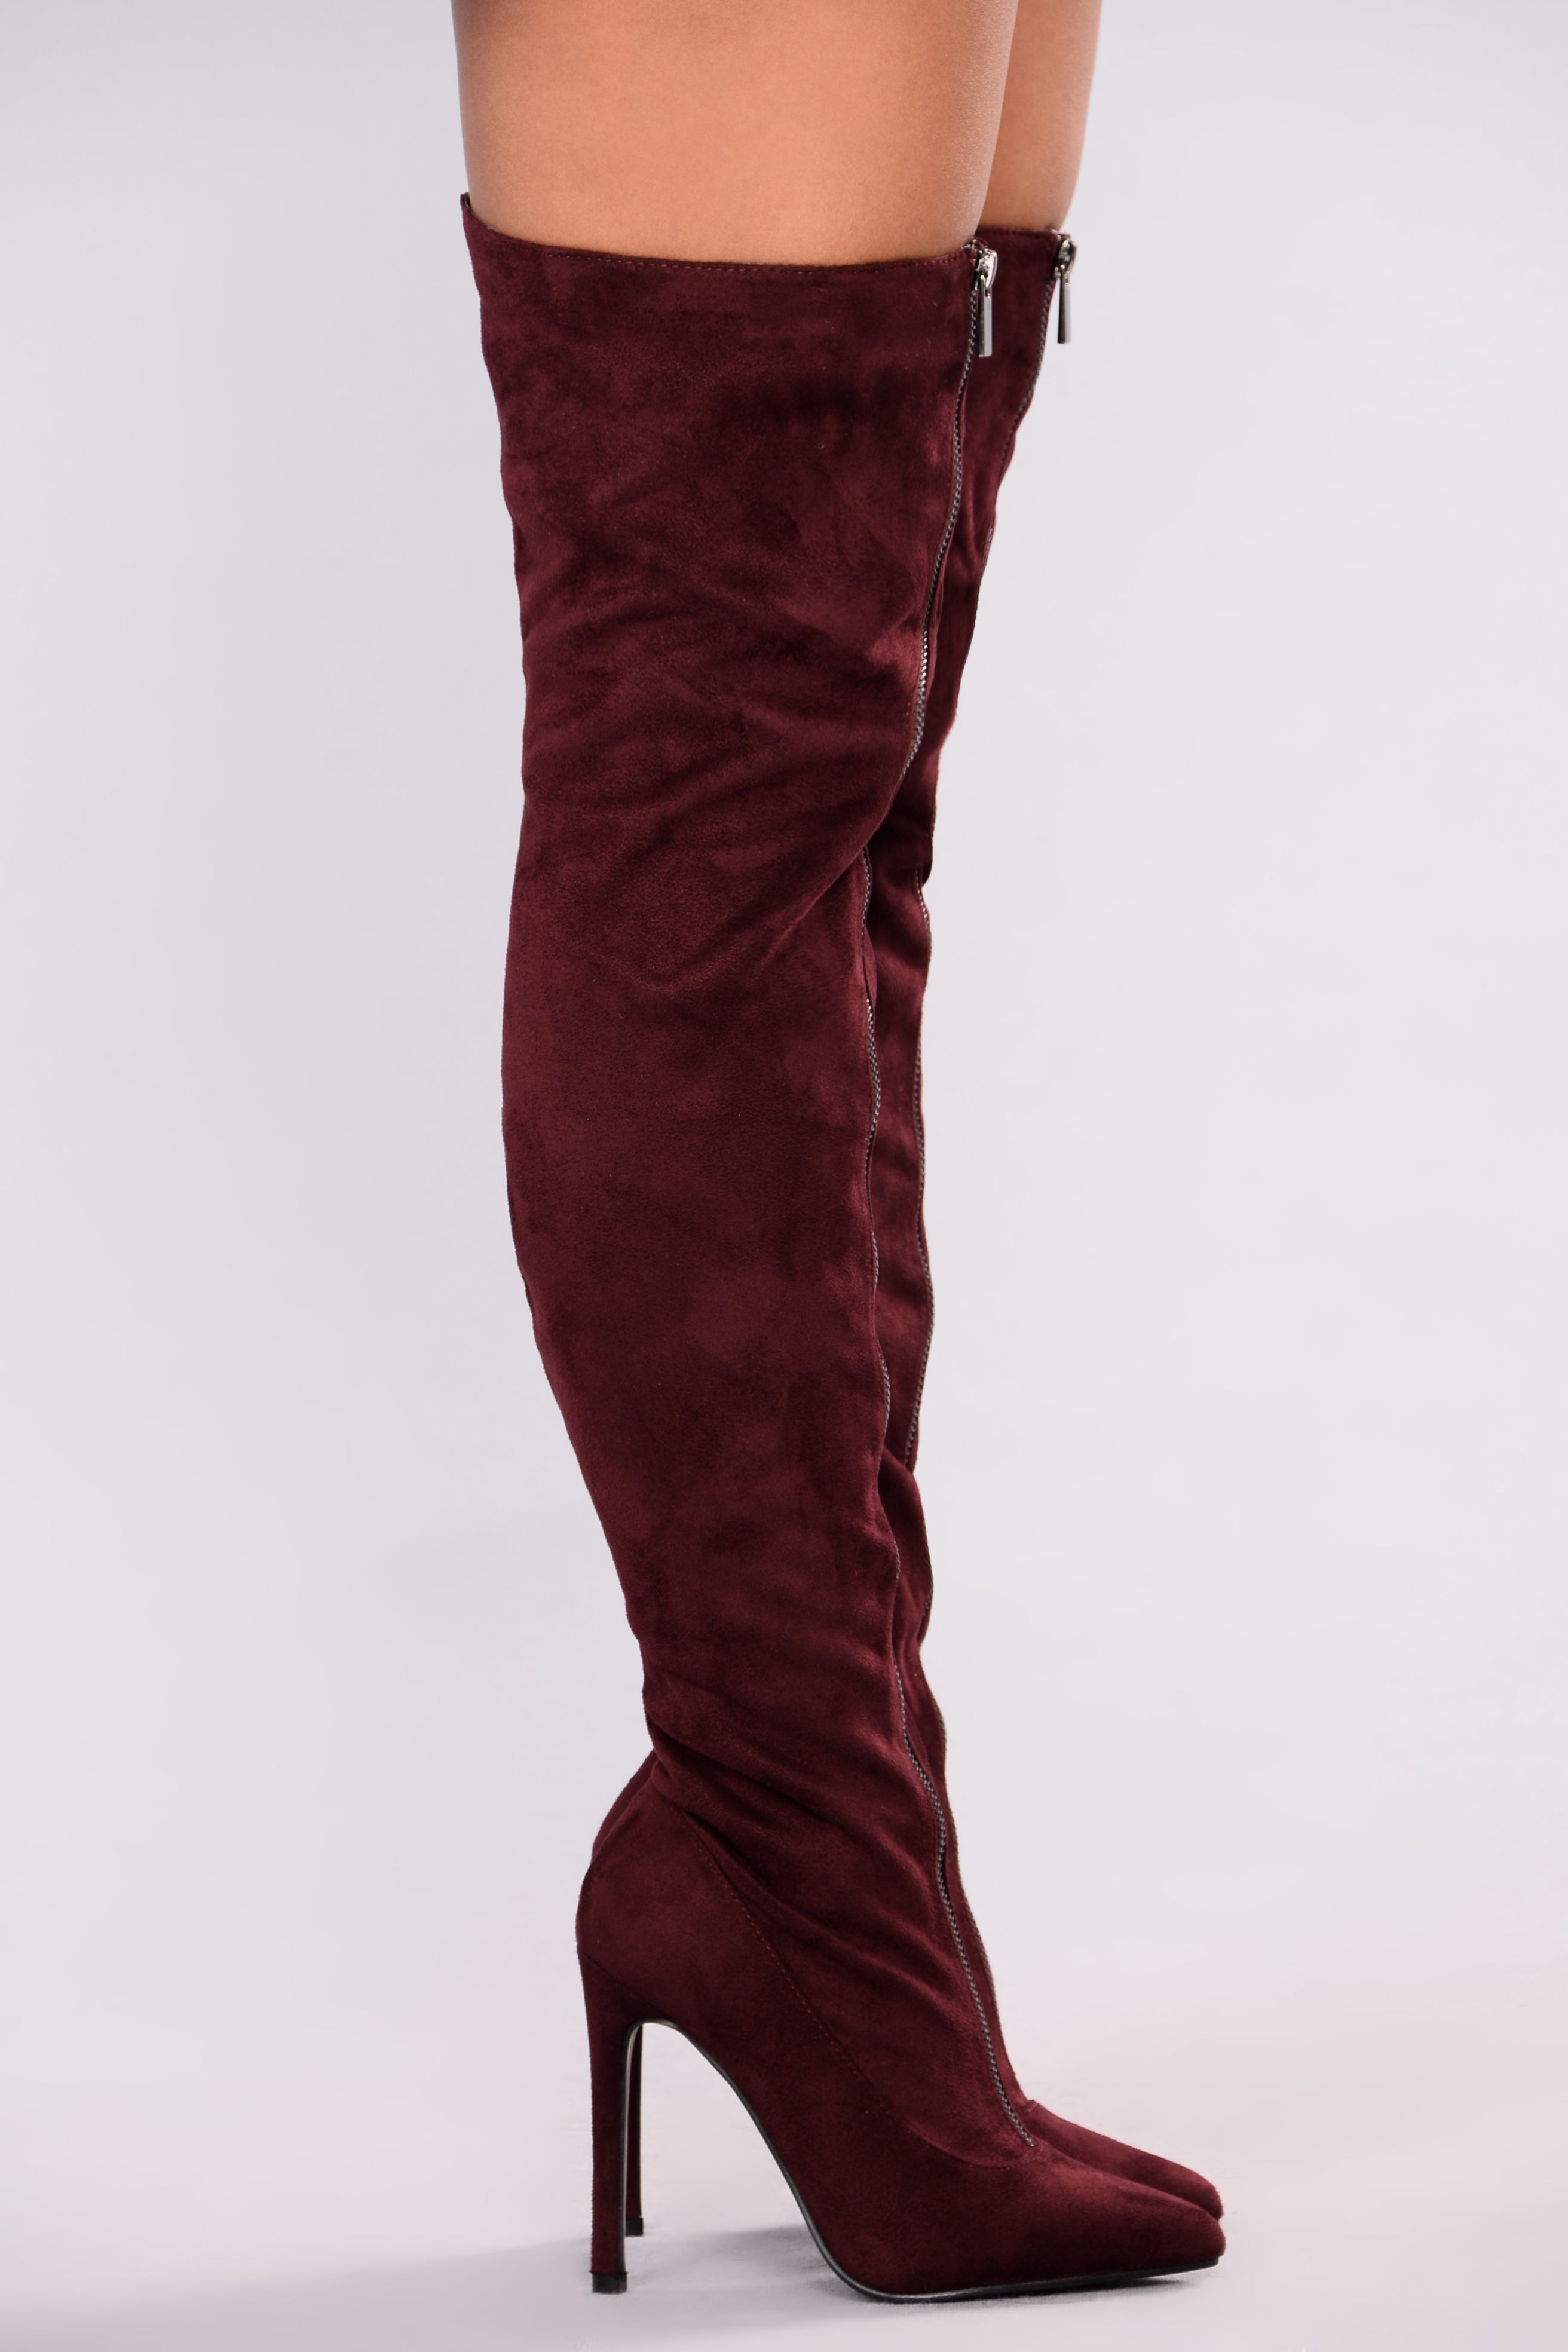 PLUM Plum Knee High Boots Navy cheap sale 2014 newest cheap sale uUN73